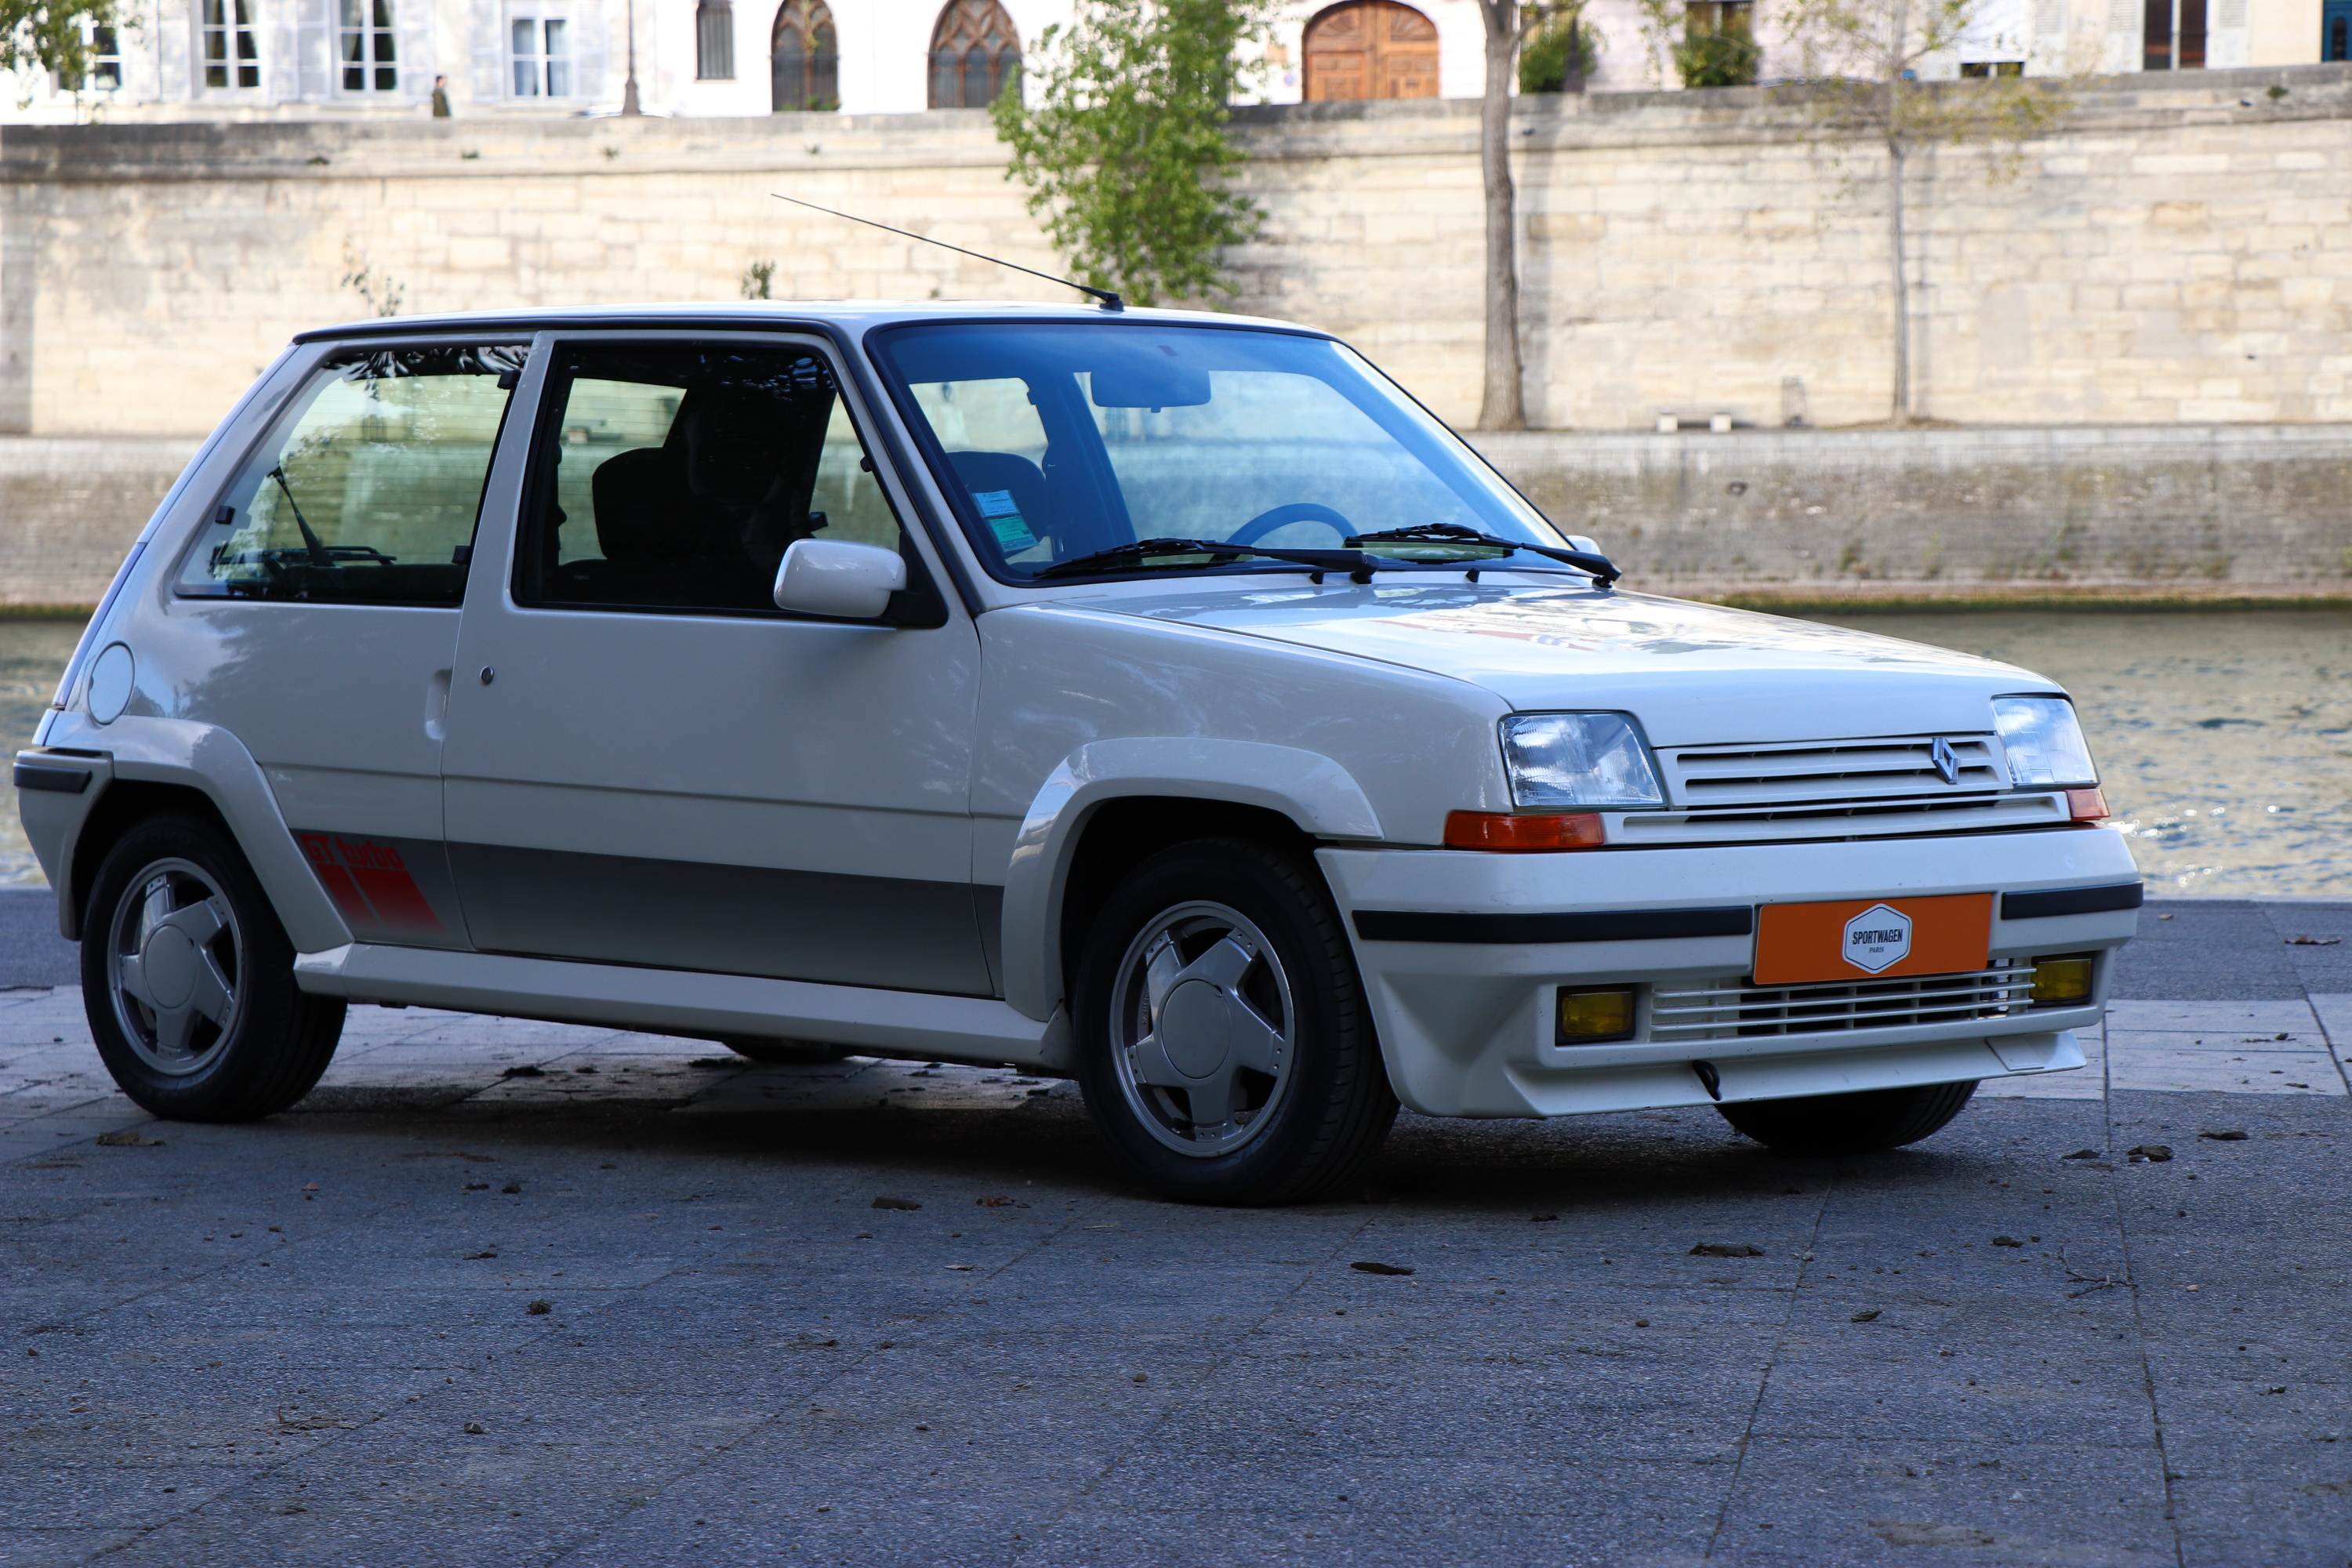 Super Cinq GT Turbo de 1989